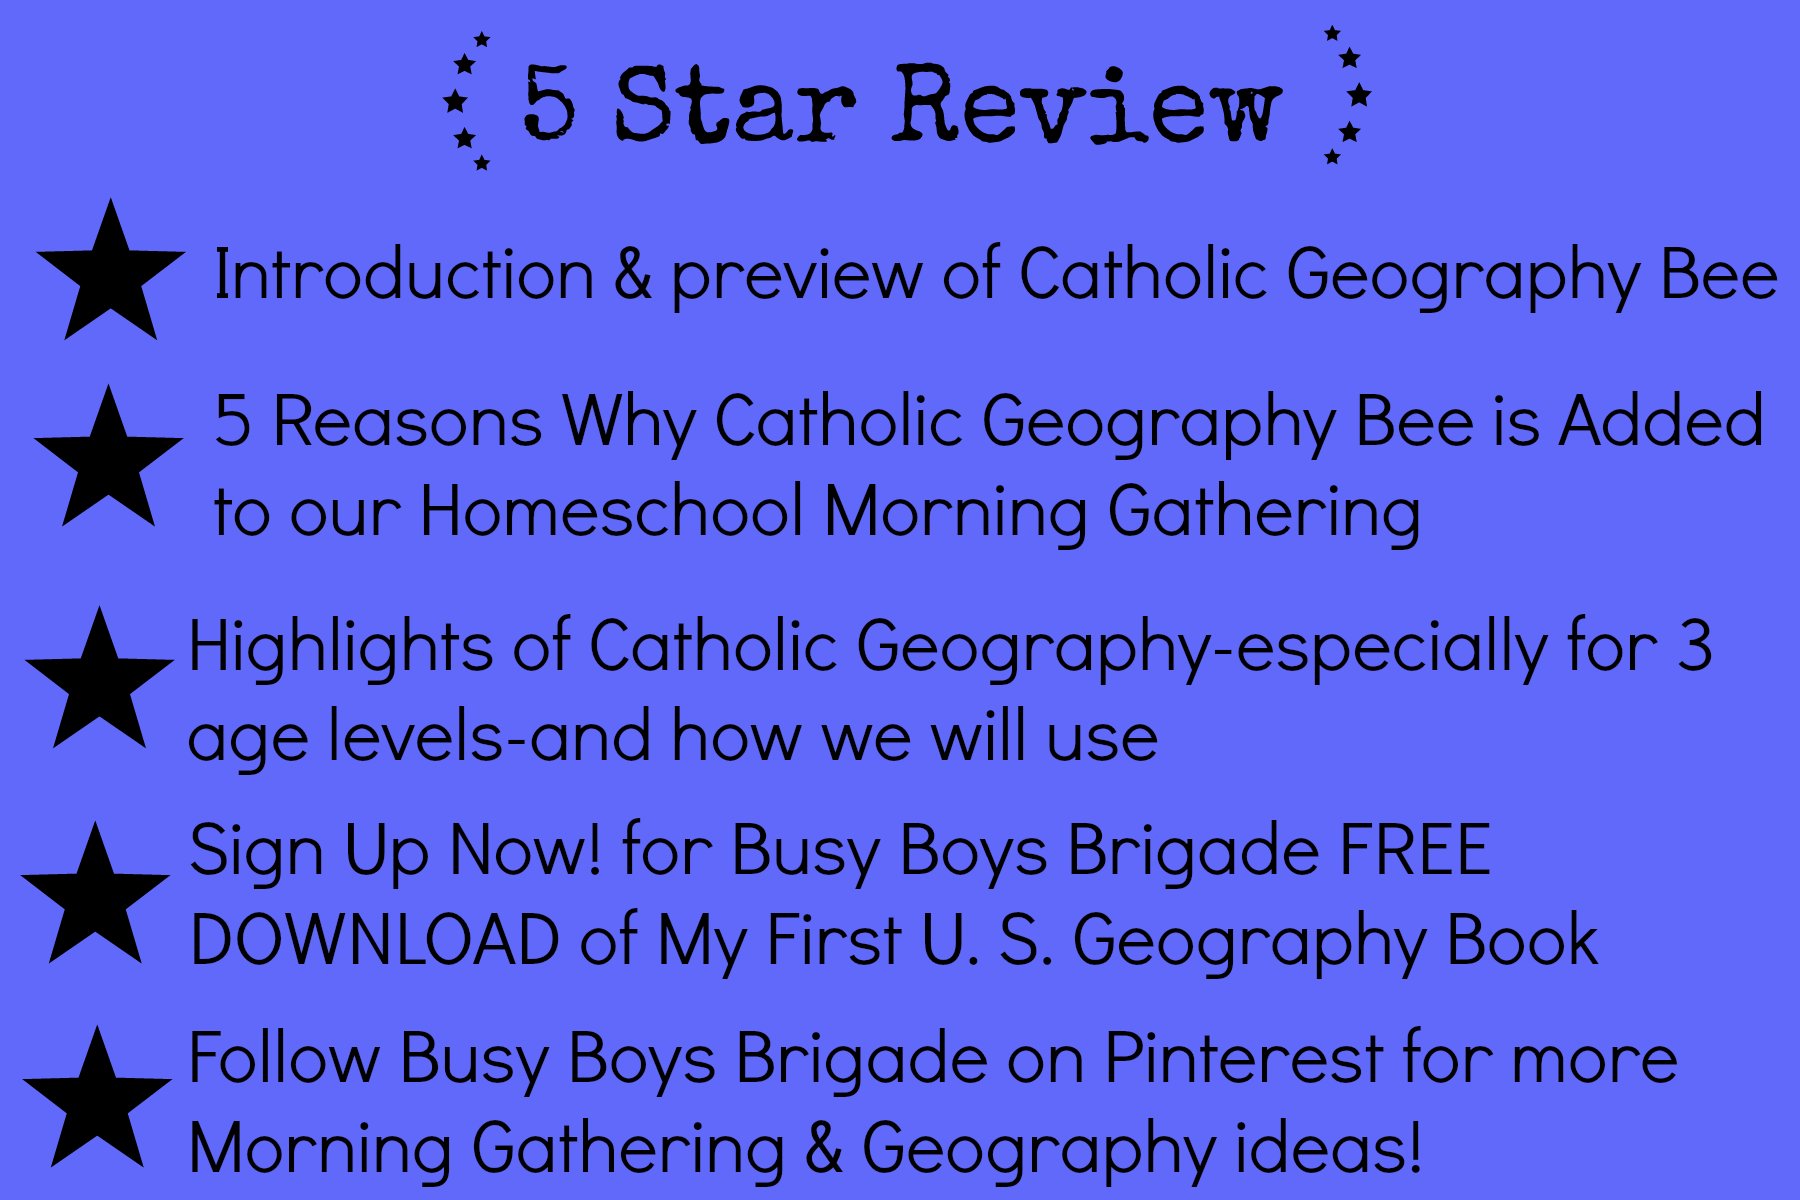 How To Use Catholic Geography Bee In Homeschool Morning